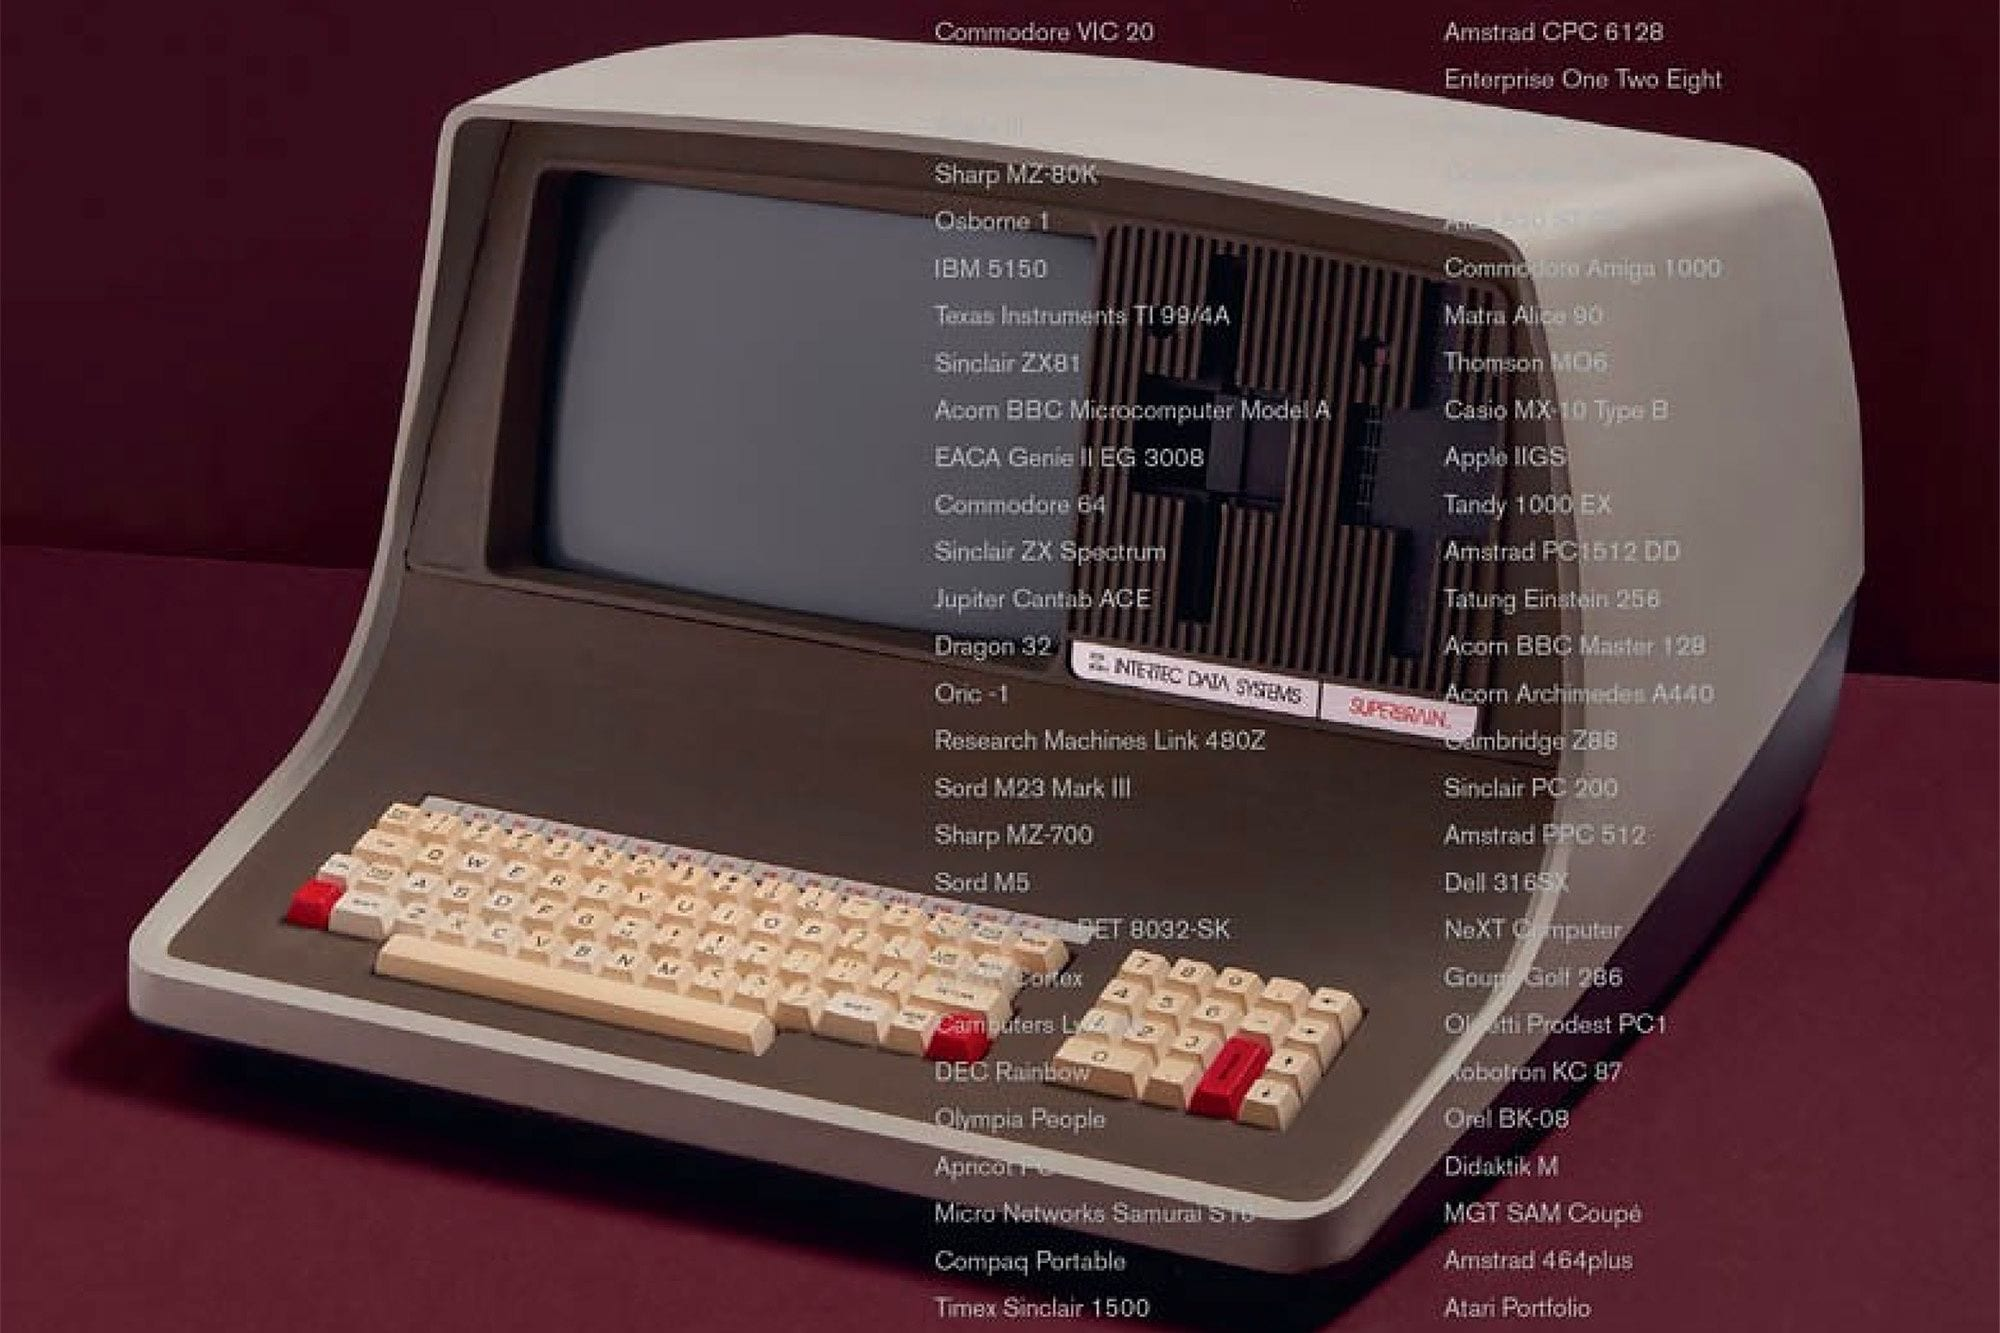 Home Computers: 100 Icons that Defined a Digital Generation (excerpt)